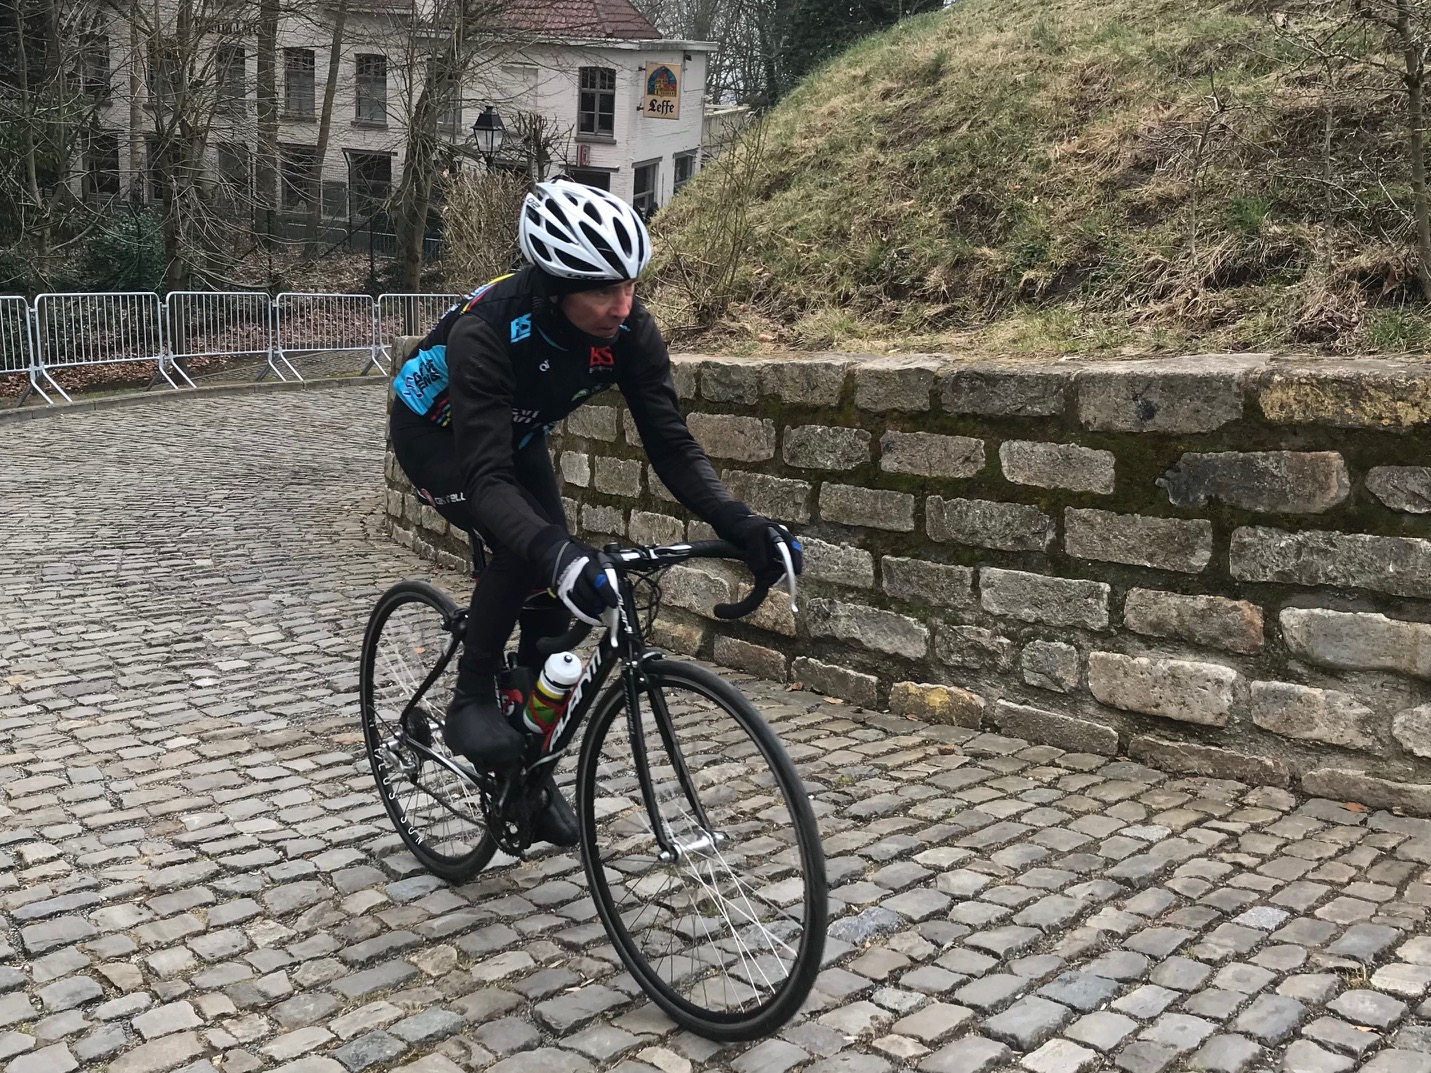 BiciSport in Flanders @ 26 Mar - Today was Muur (or Wall)day at the Muur of Geraadsbergan. A famous cobbled climb used in major races over several decades. Mike Lawson just near the summit.